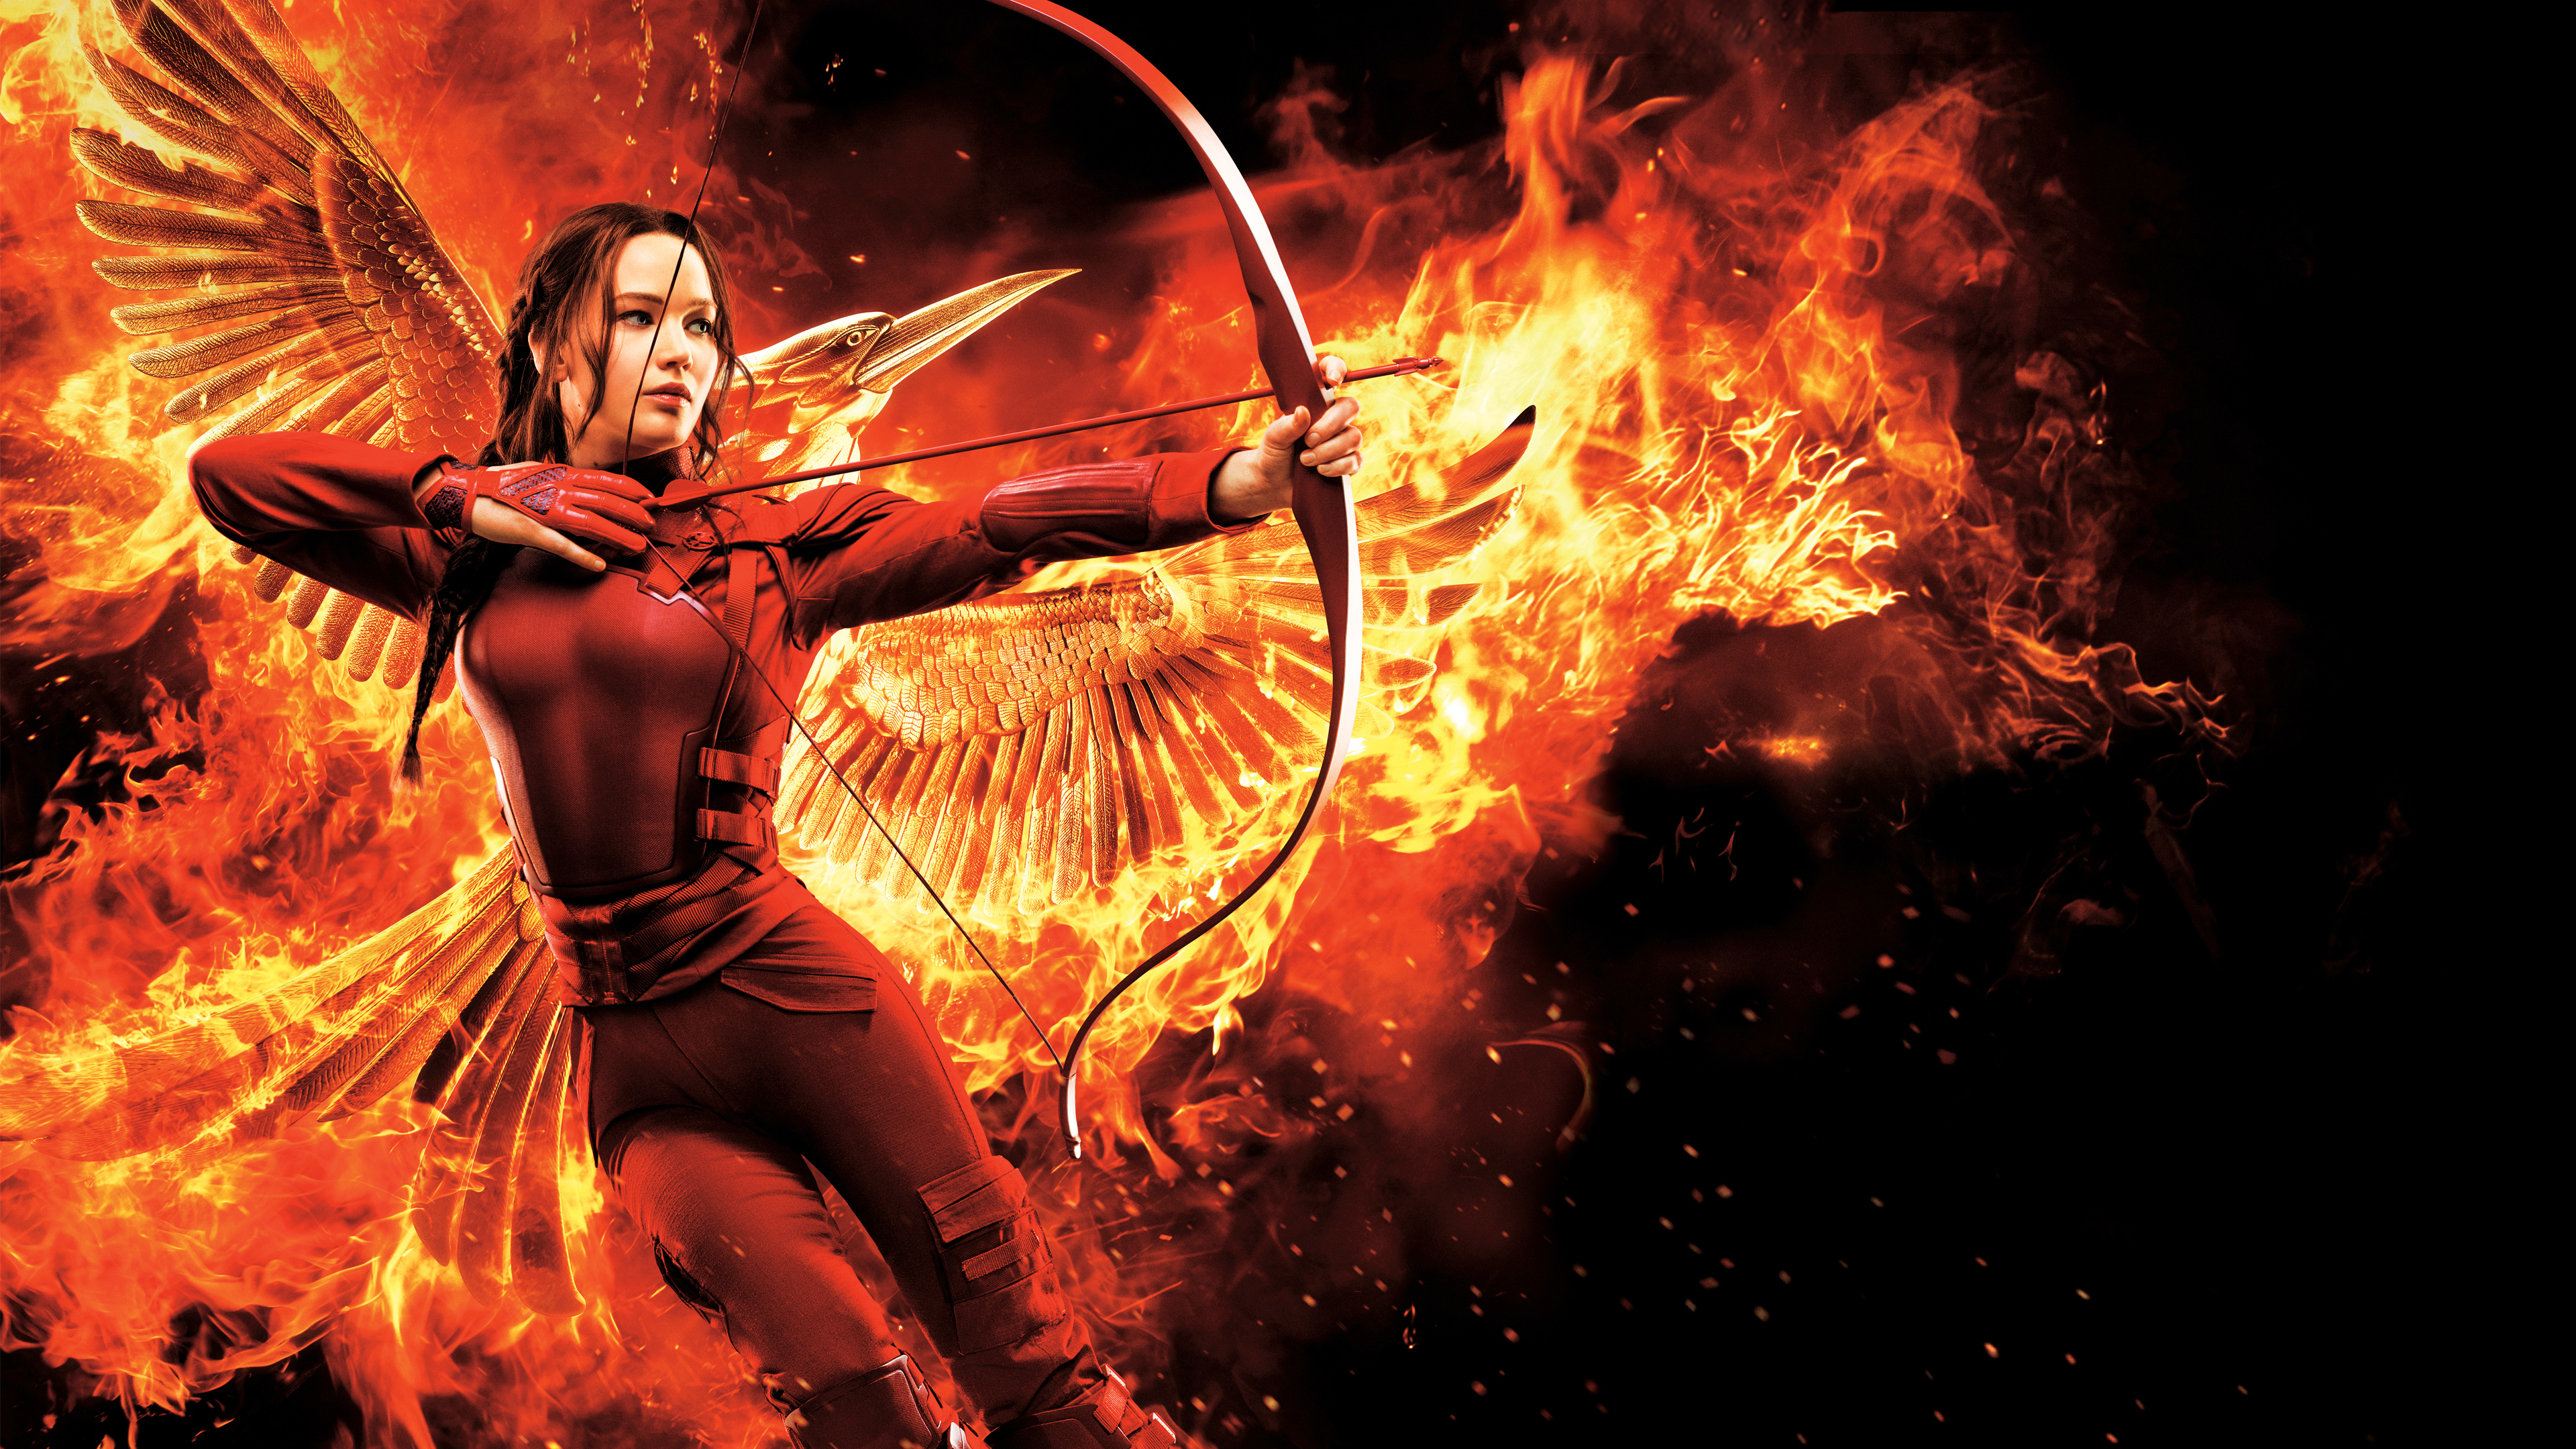 The Hunger Games Mockingjay Part 2 Katniss Wallpapers HD Wallpapers 3840x2160